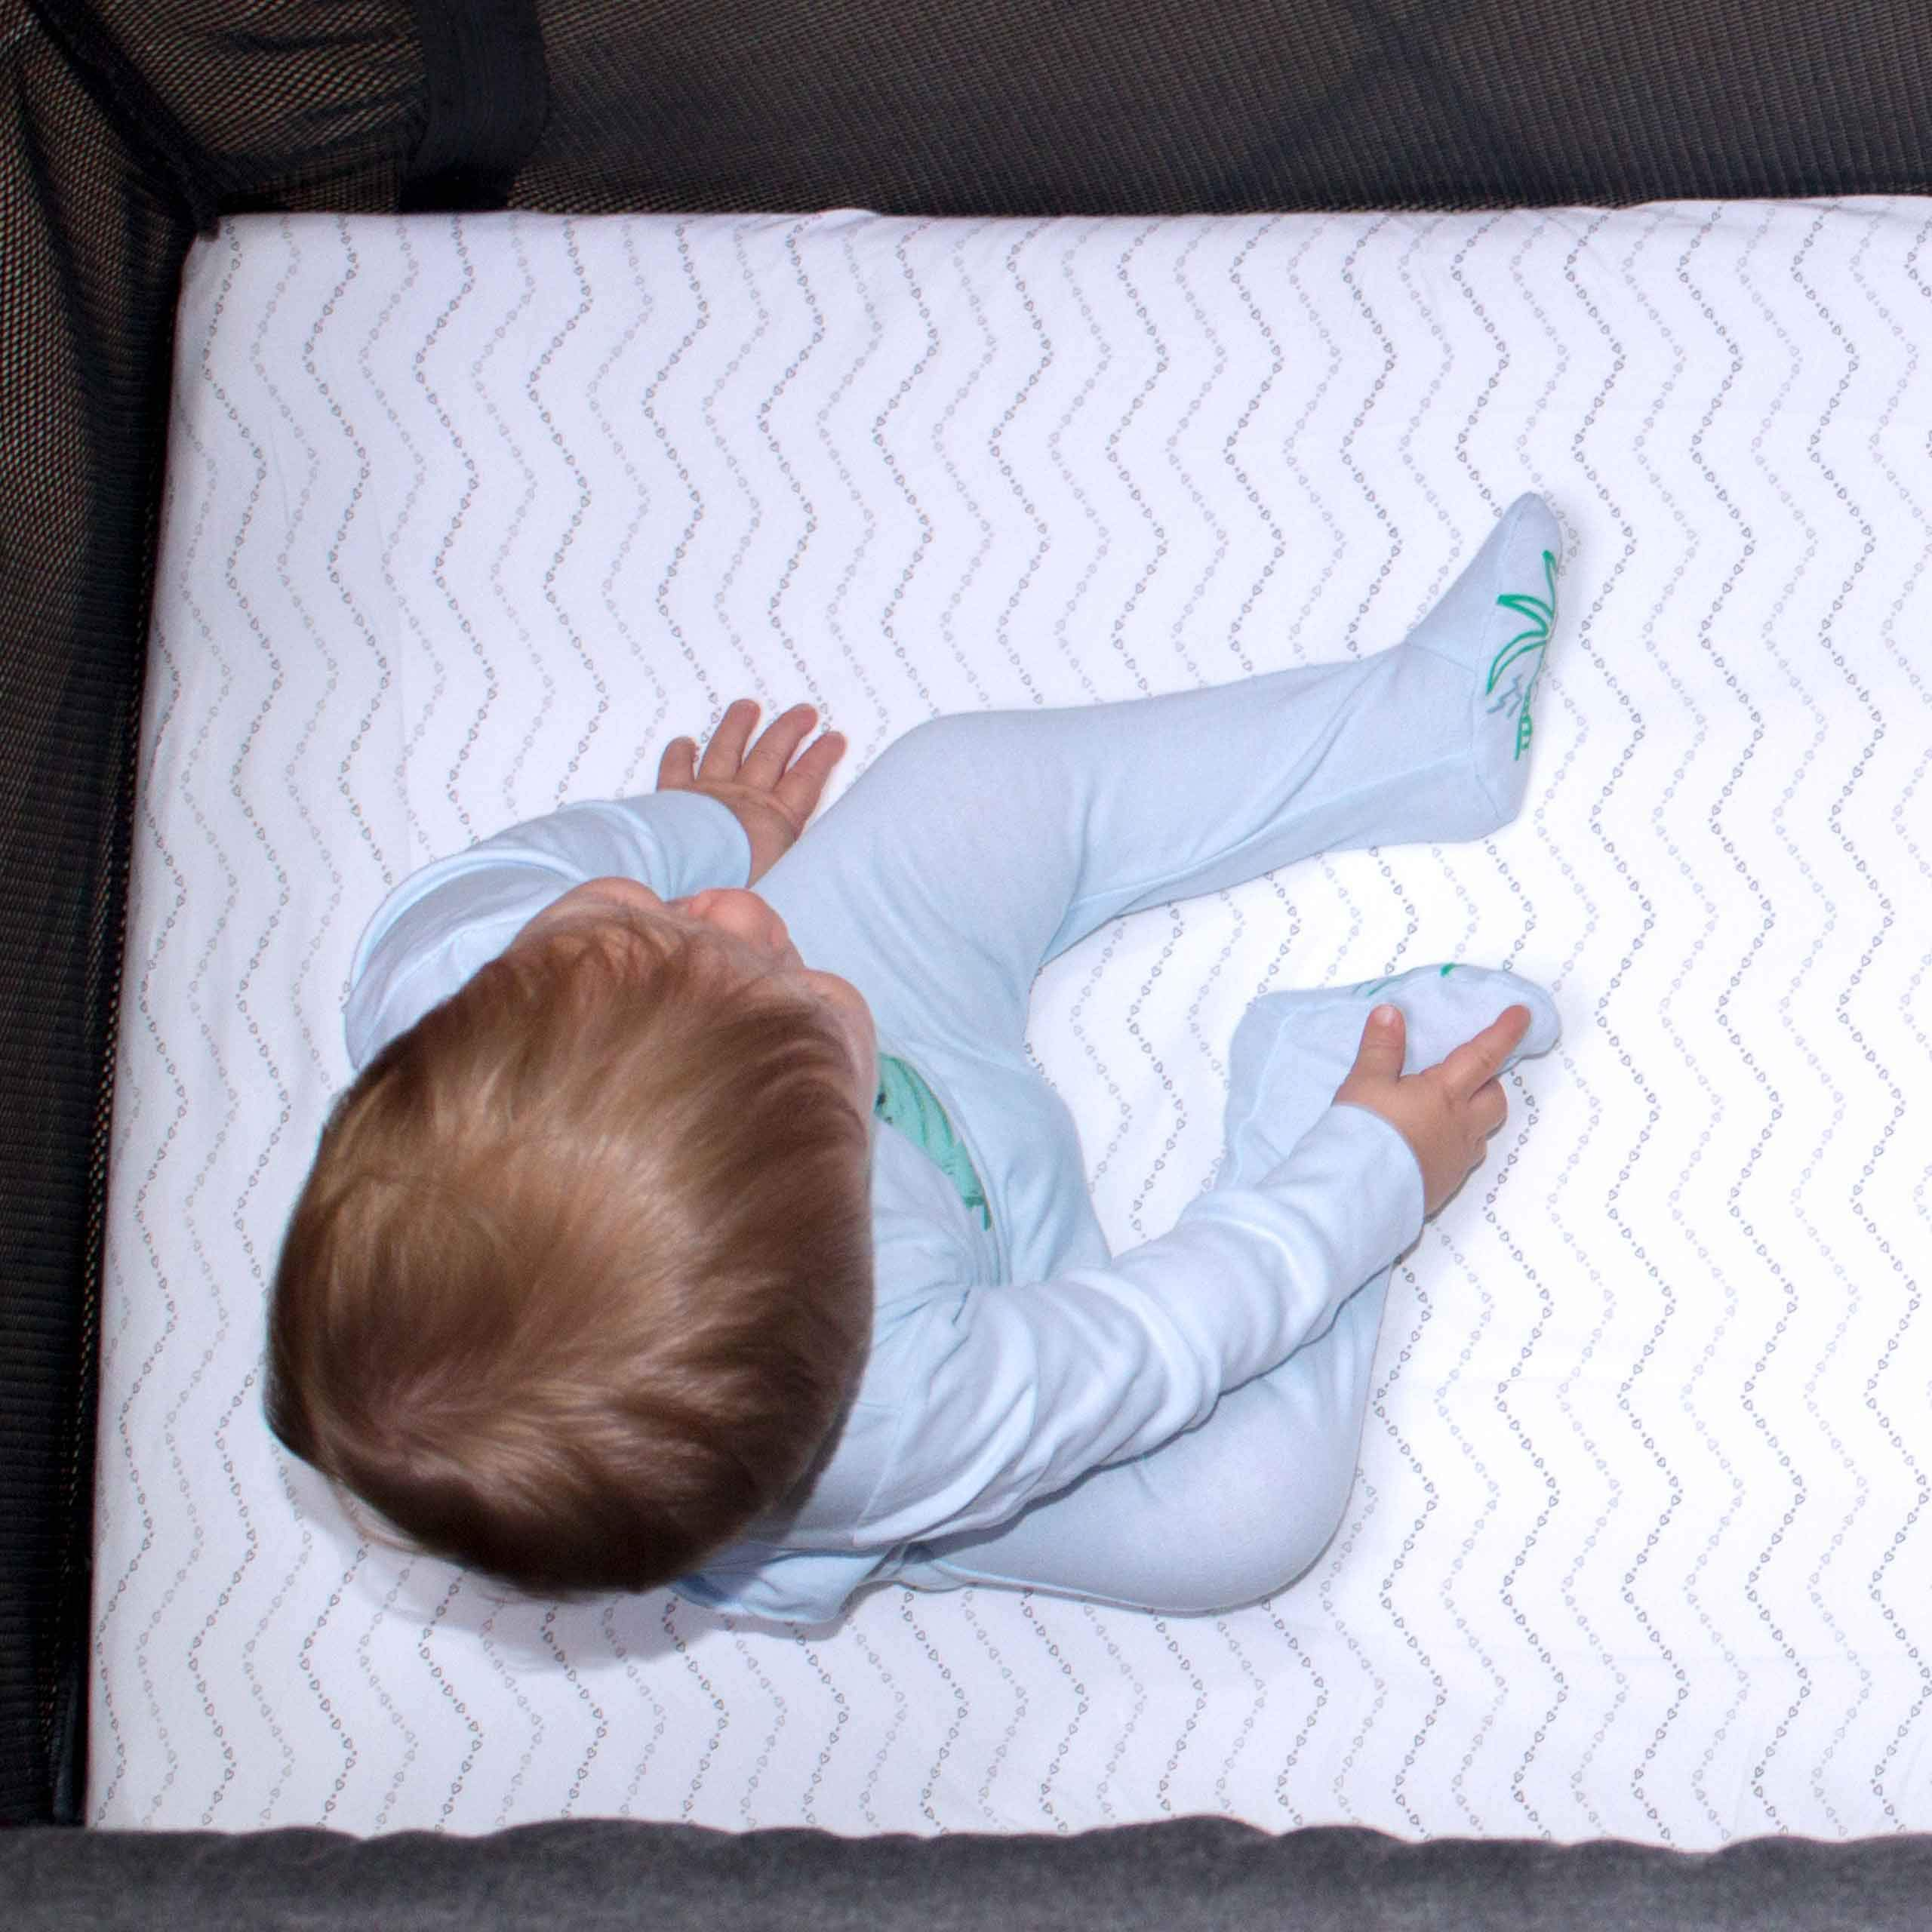 Guava Lotus Travel Crib Sheets Fitted Crib Sheets for The New 4 TAB Mattress ONLY Set of 2 for Boys /& Girls Baby and Toddler - 100/% Organic Cotton Crib Sheets